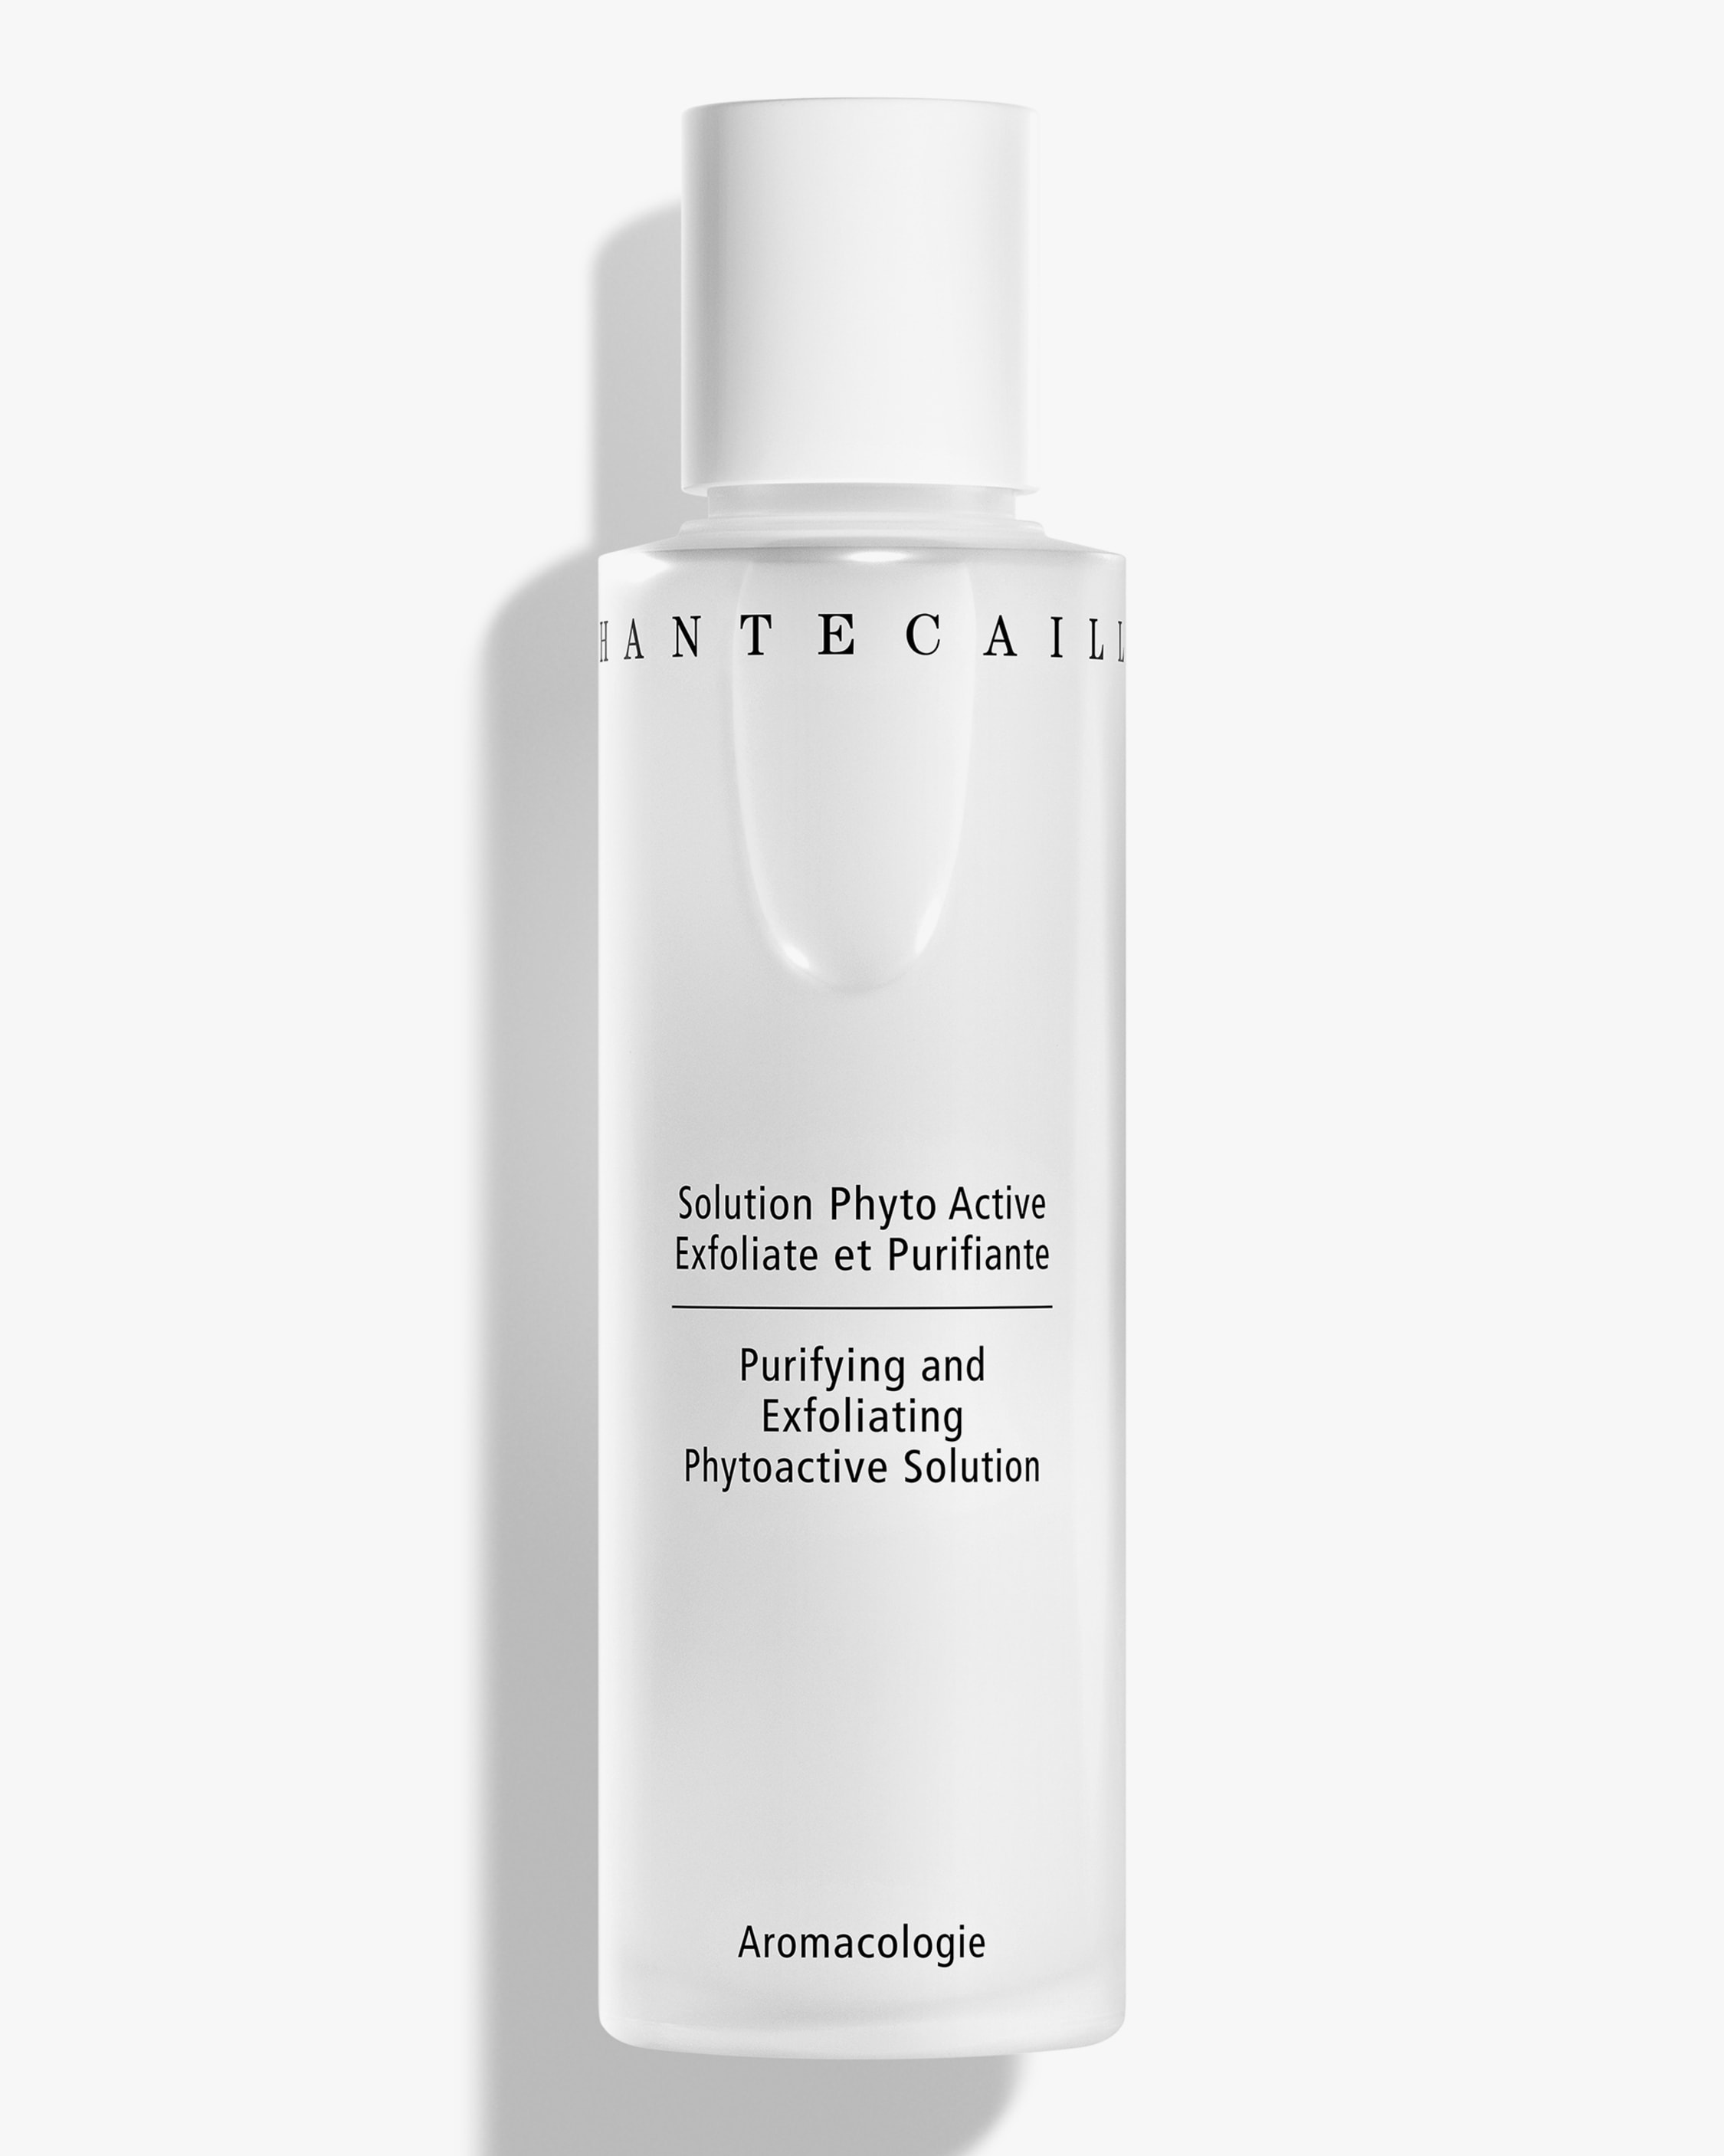 Chantecaille Purifying & Exfoliating Phytoactive Solution 100ml 1